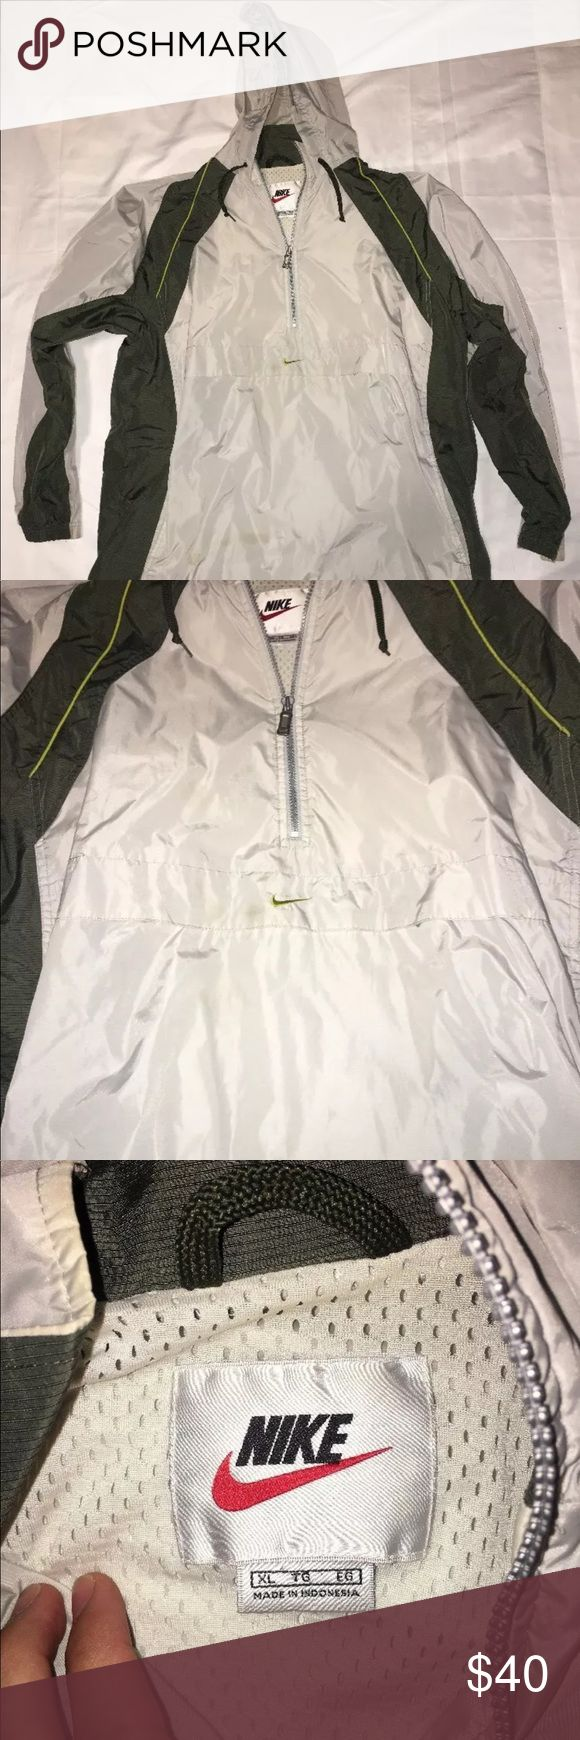 vintage 1990s nike rain jacket 90s nike rain jacket  super clean  size XL  follow on the gram @pa_soleking.610  i am always buying shoes please message me or dm me on the gram  all buyers who do not pay for their item will be blocked from my page   please make sure to look at all pictures before purchasing   if you want to offer make sure you can pay that offer or don't bother offering at all   payment is due within 3 days or unpaid case will be automatically opened Nike Jackets & Coats…